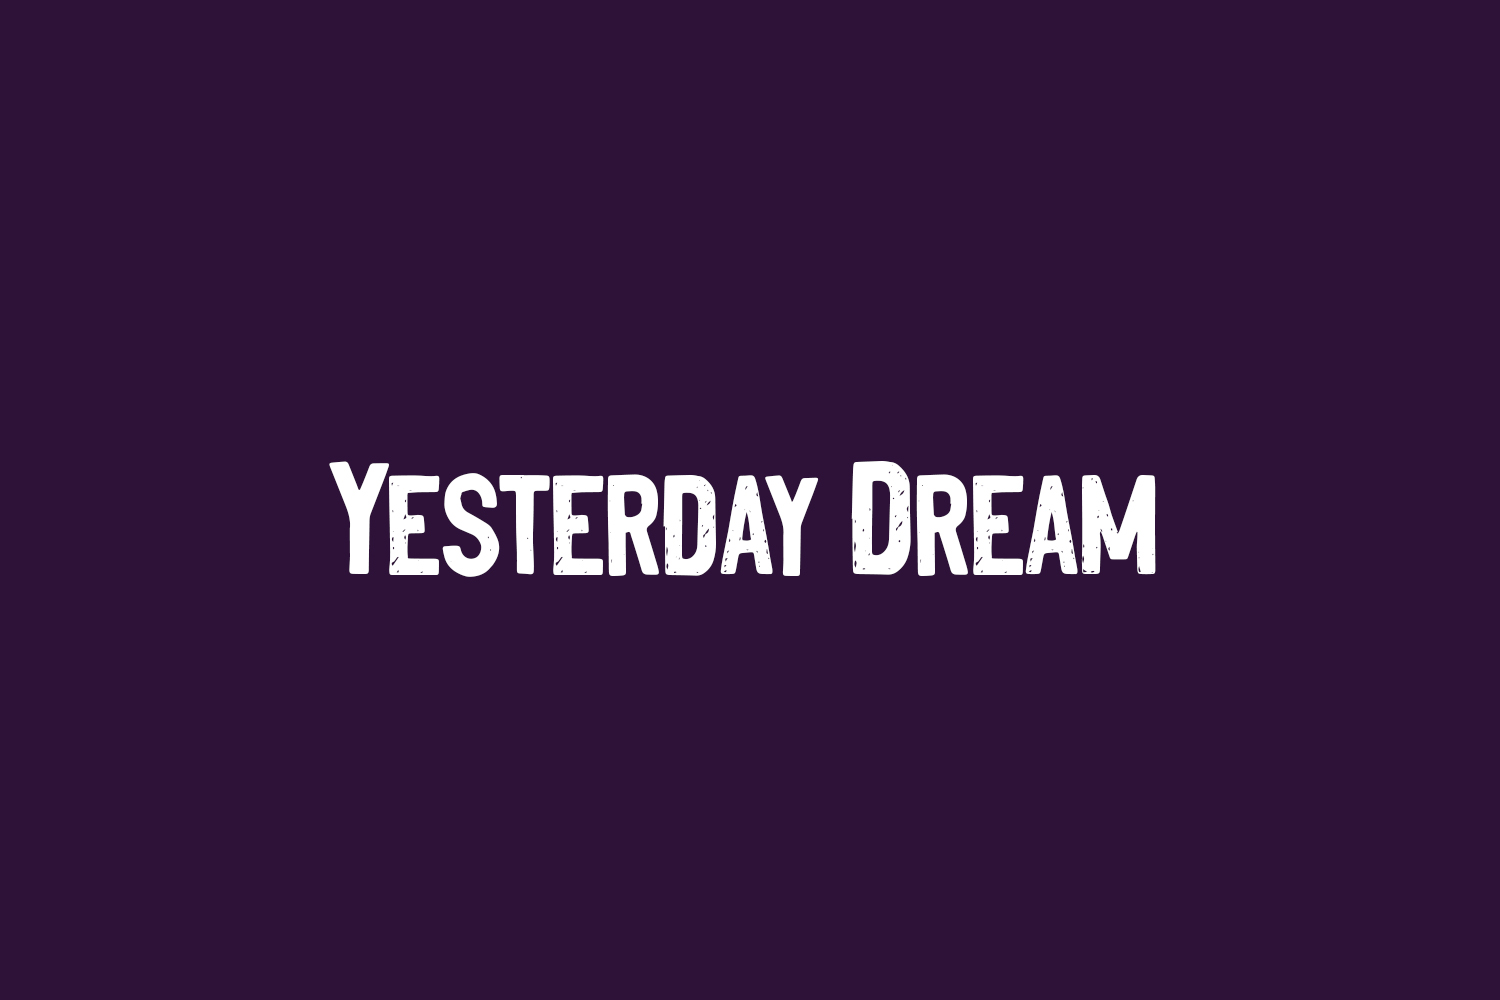 Yesterday Dream Free Font